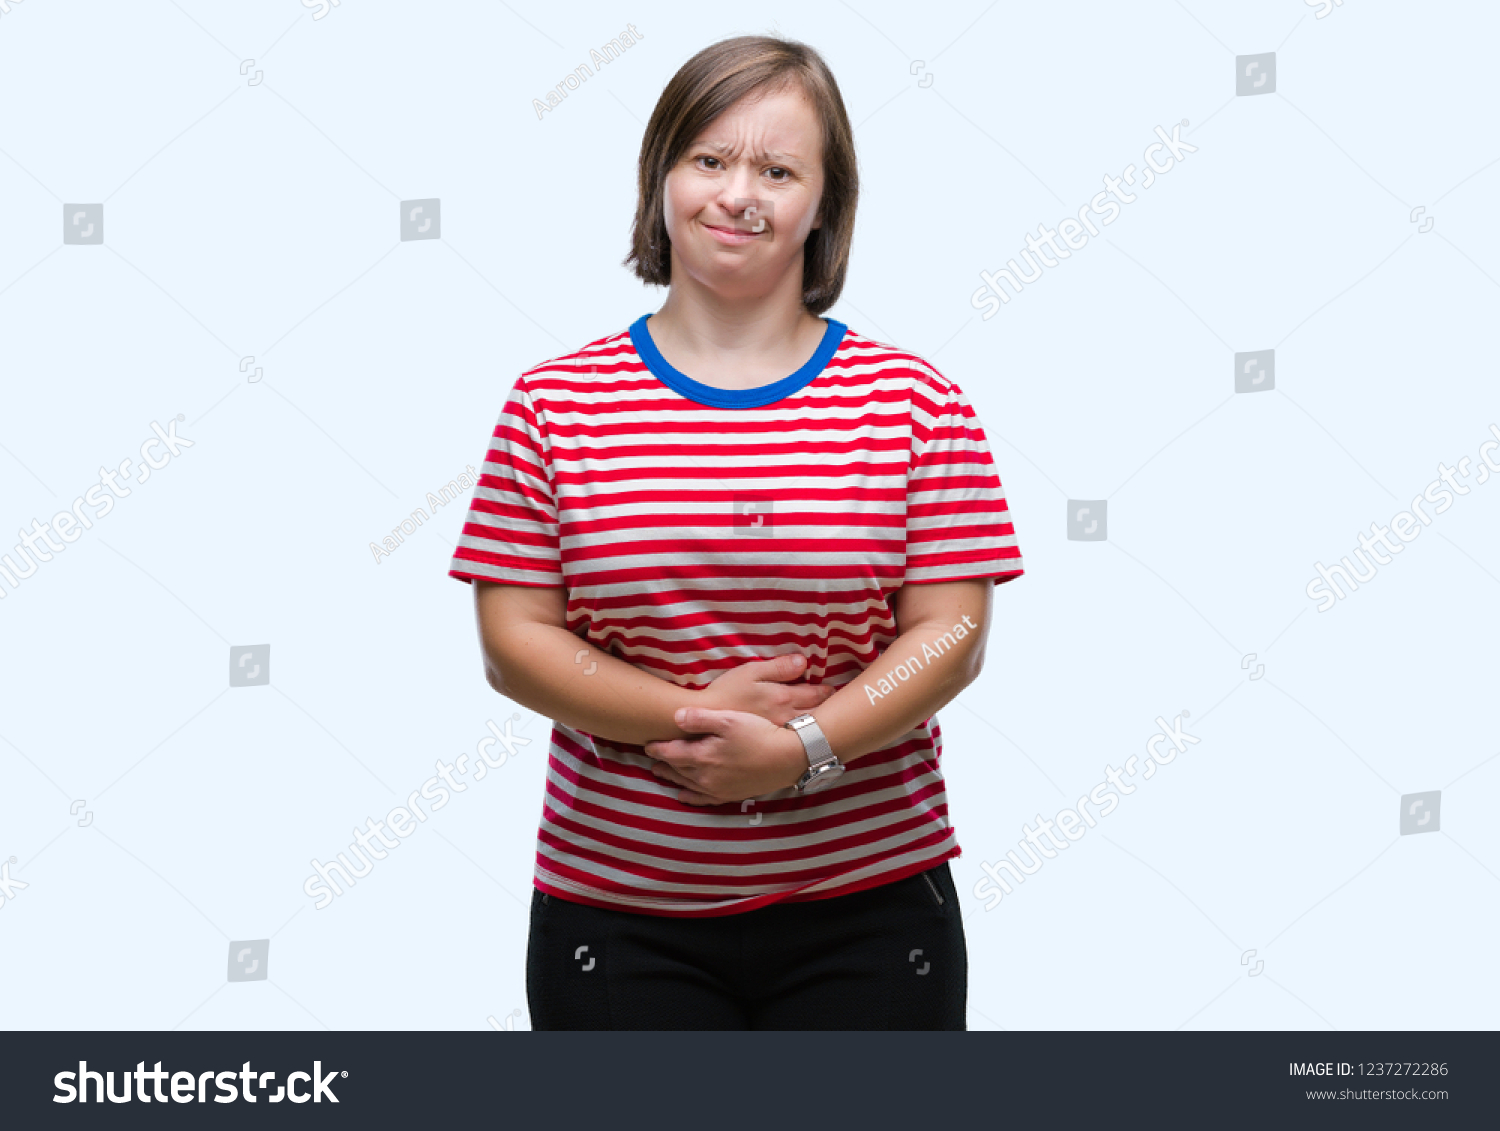 Adult down syndrome pain in hands galleries 113